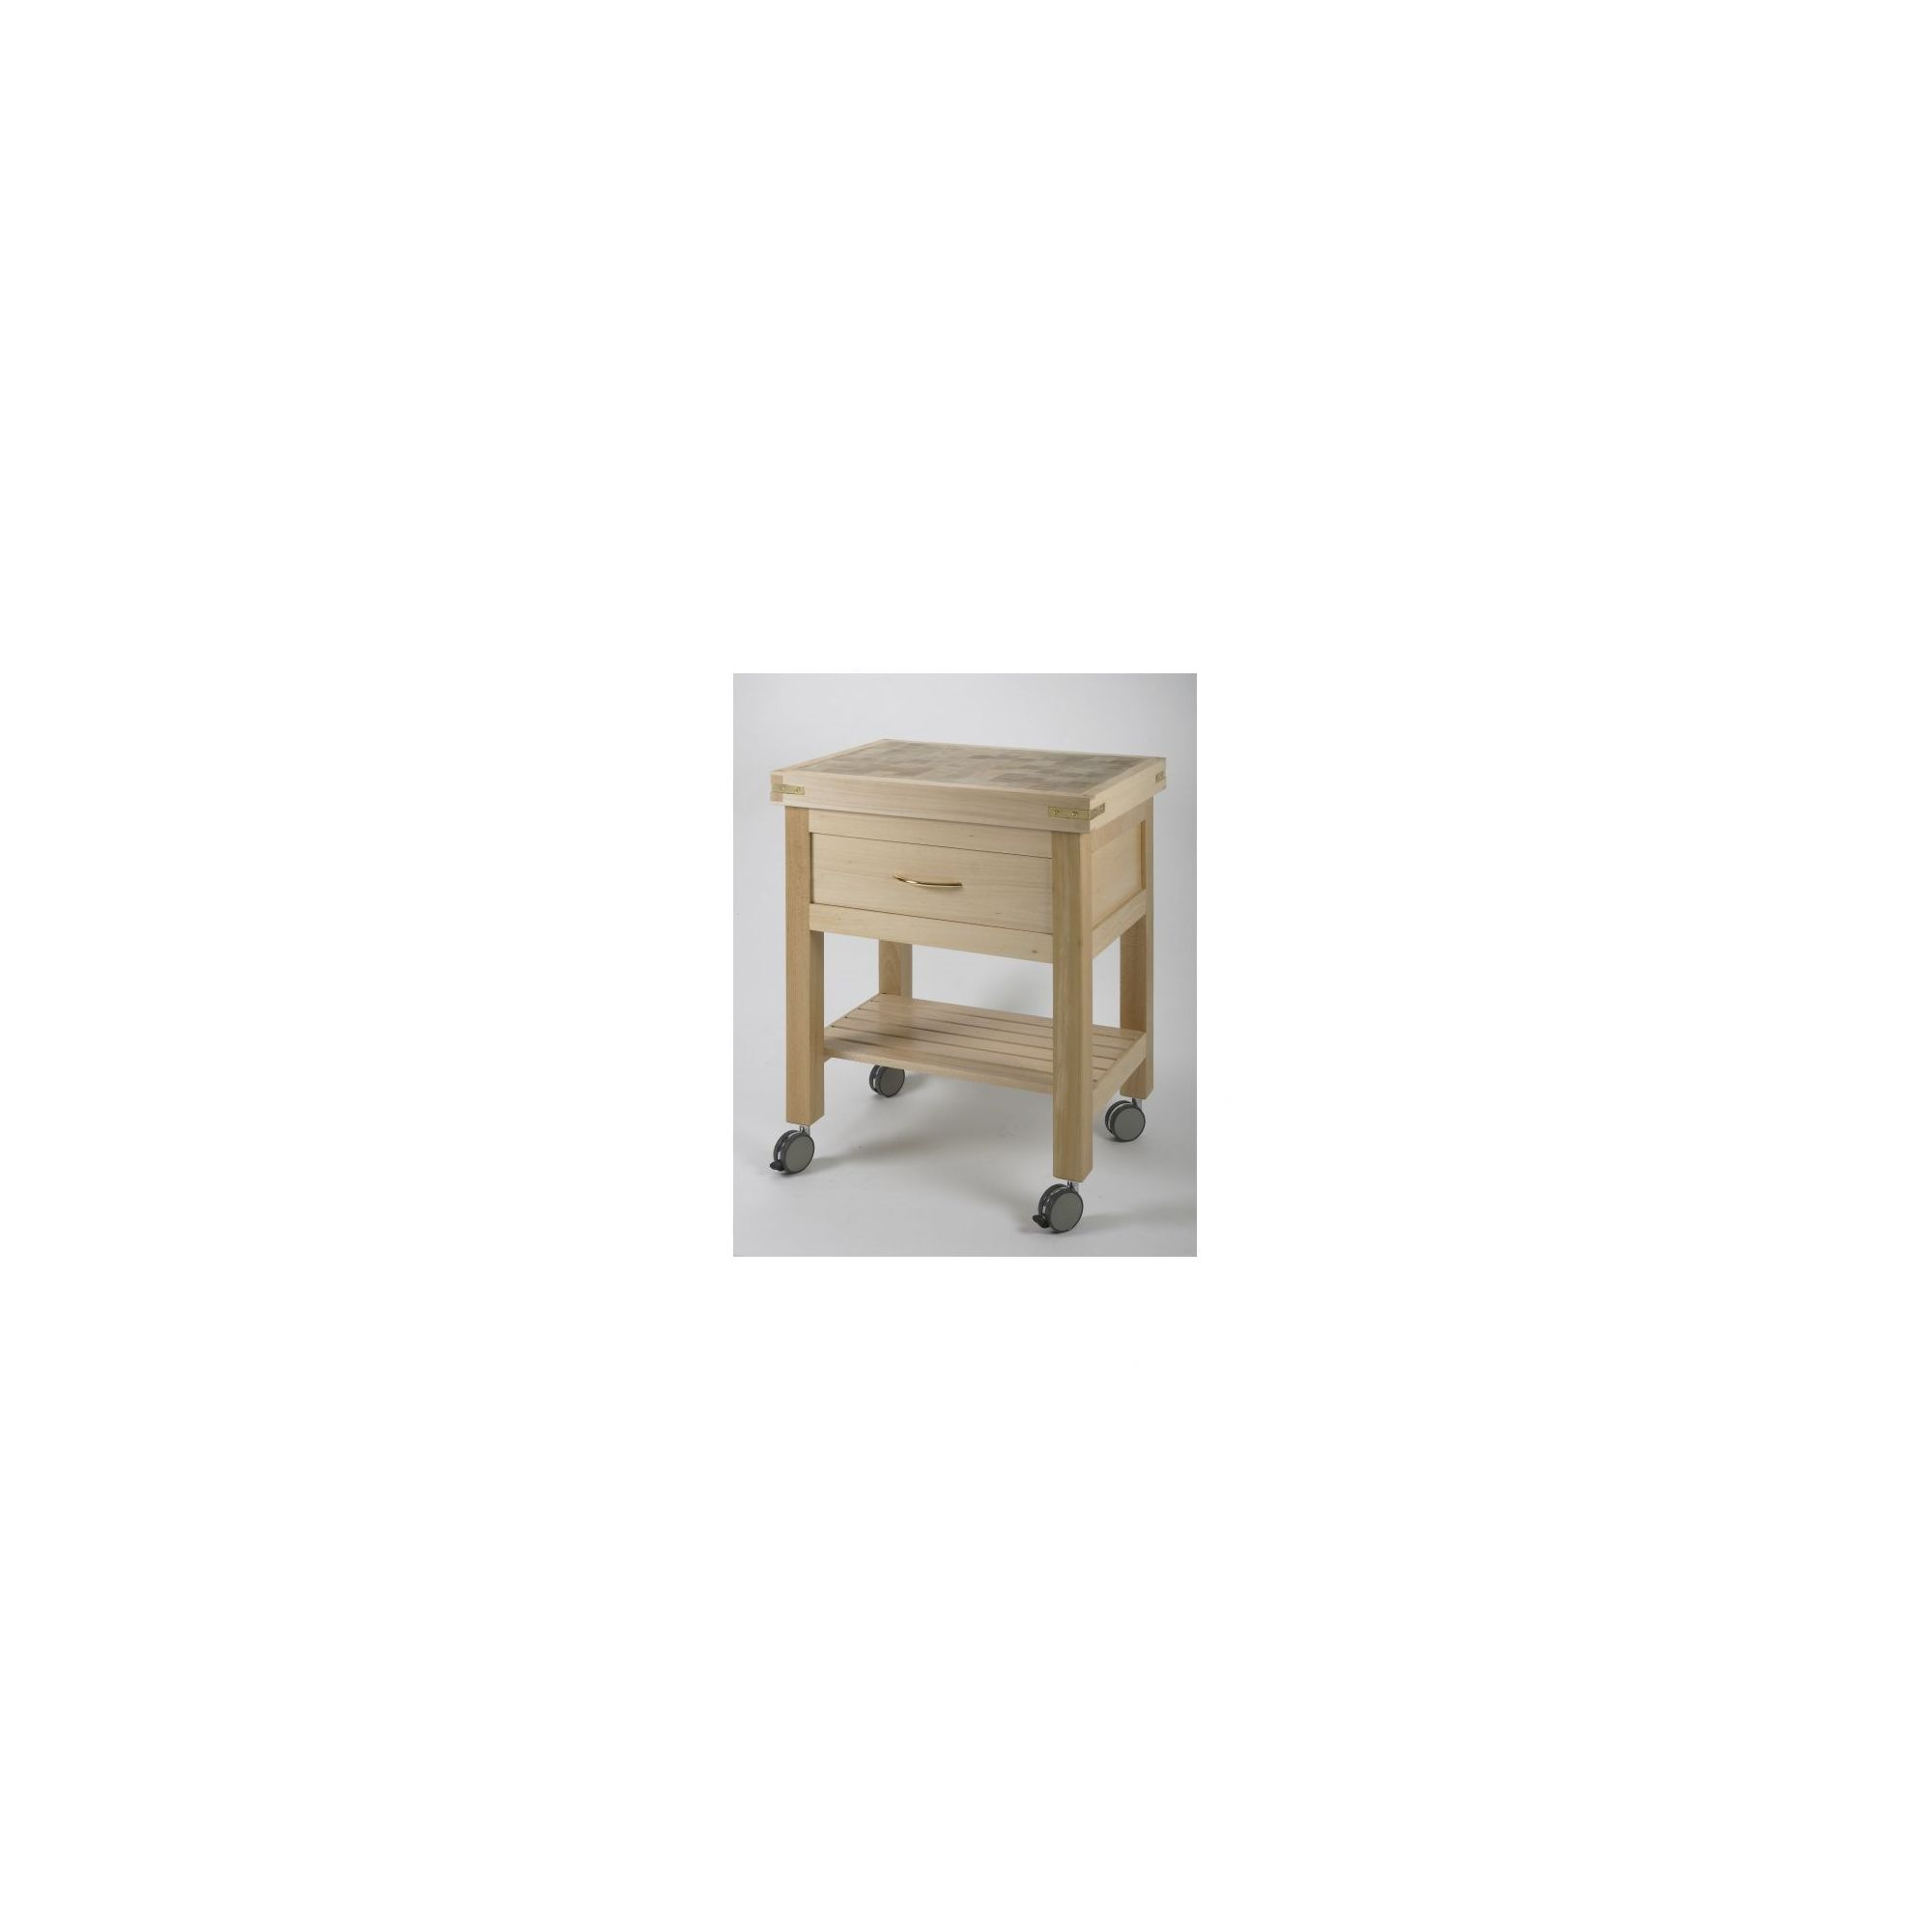 Chabret Kitchen Cart - 85cm X 60cm X 50cm at Tesco Direct